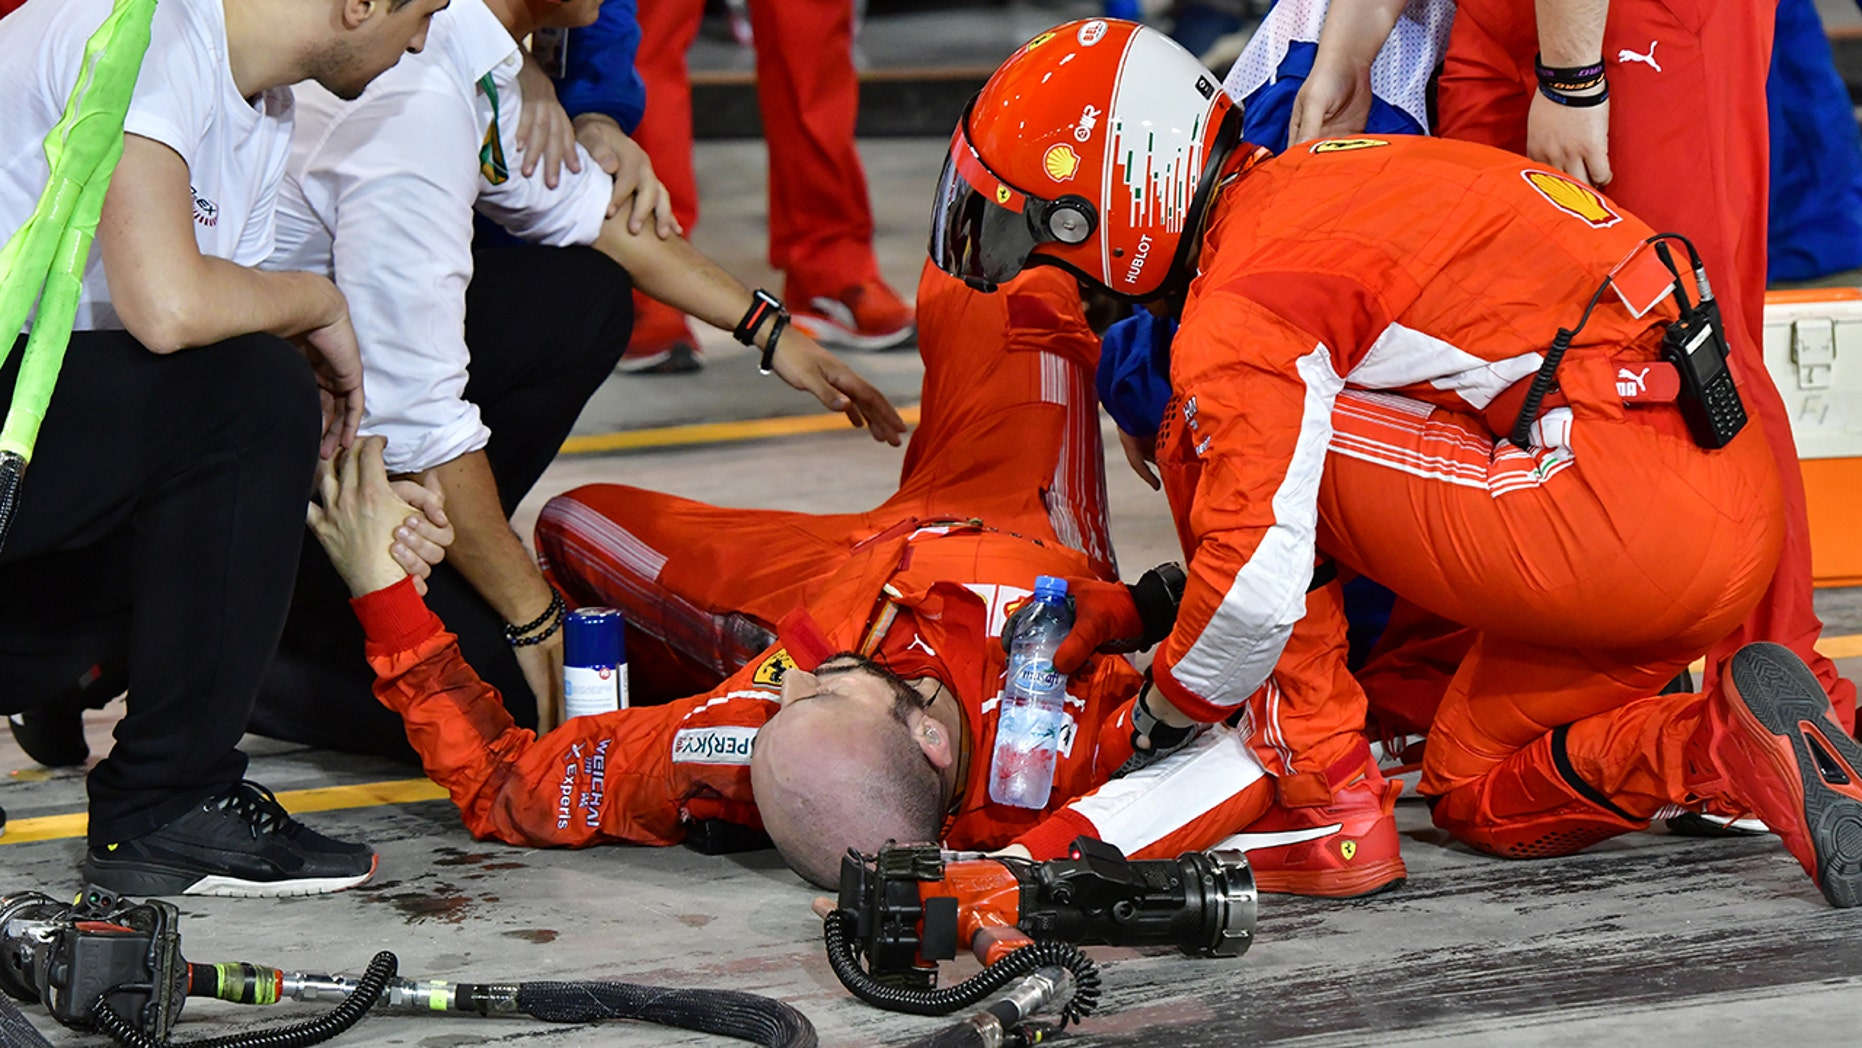 Teammates aid Francesco Cigarini after he was hit by Kimi Raikonnen's F1 car.